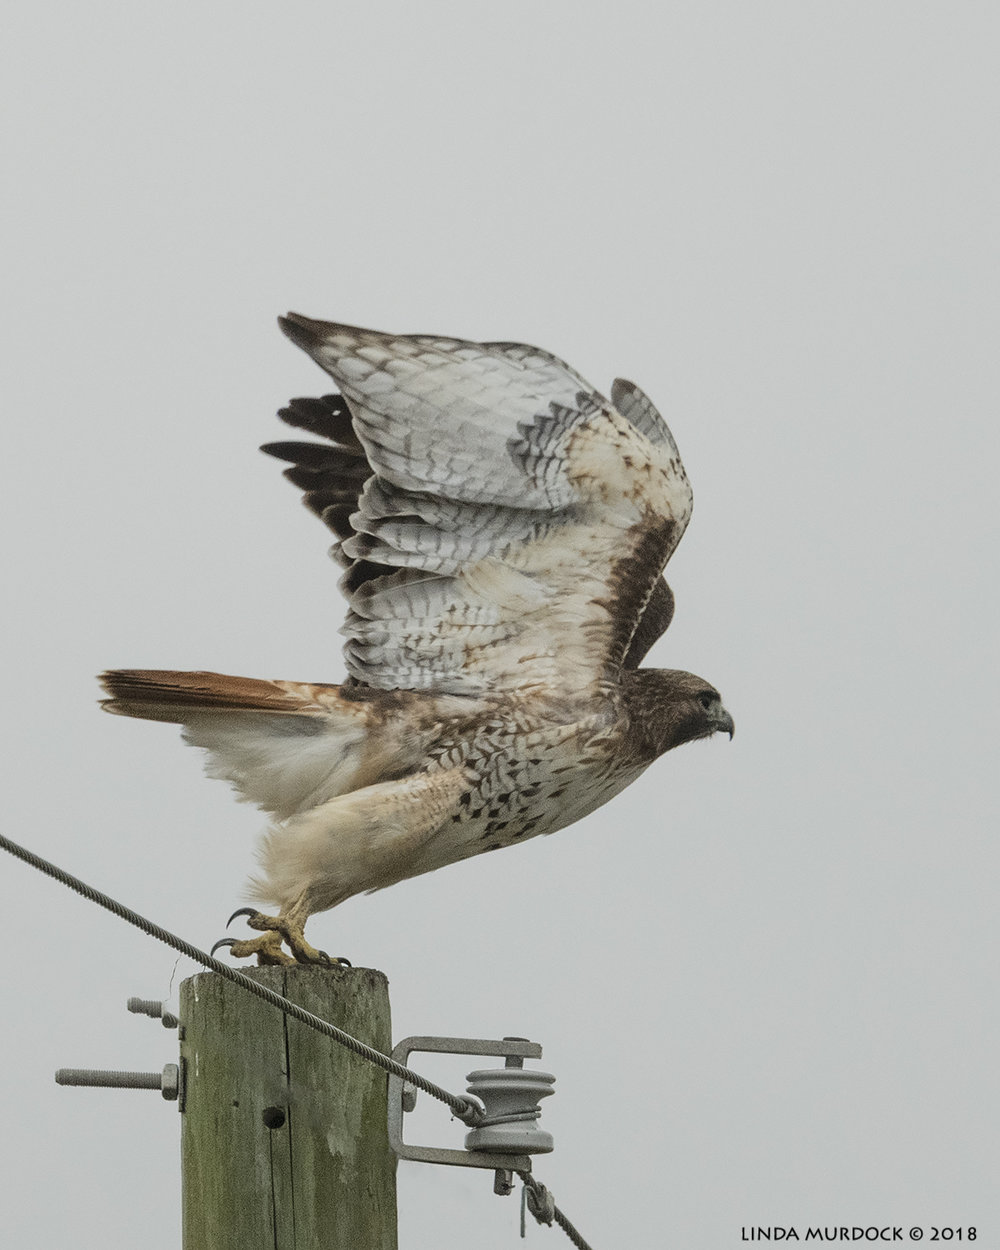 Red-tailed Hawk take off  Nikon D850 with NIKKOR 500mm f/4E VR with Nikon 1.4x TC ~ 1/2000 sec f/6.3 ISO 1250; hand-held